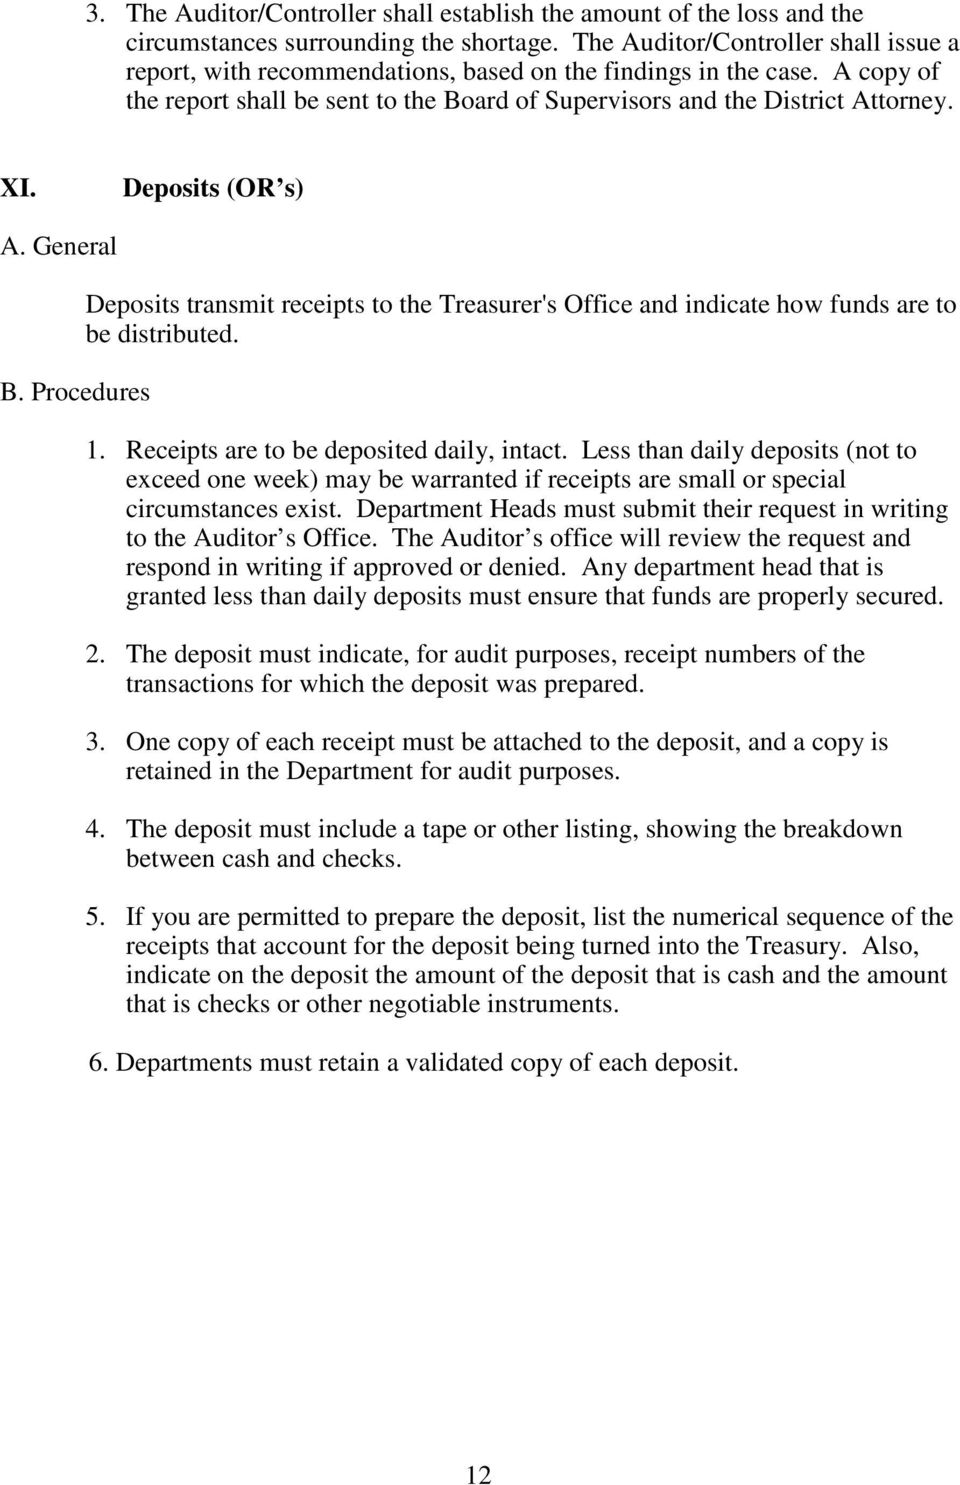 Deposits (OR s) B. Procedures Deposits transmit receipts to the Treasurer's Office and indicate how funds are to be distributed. 1. Receipts are to be deposited daily, intact.